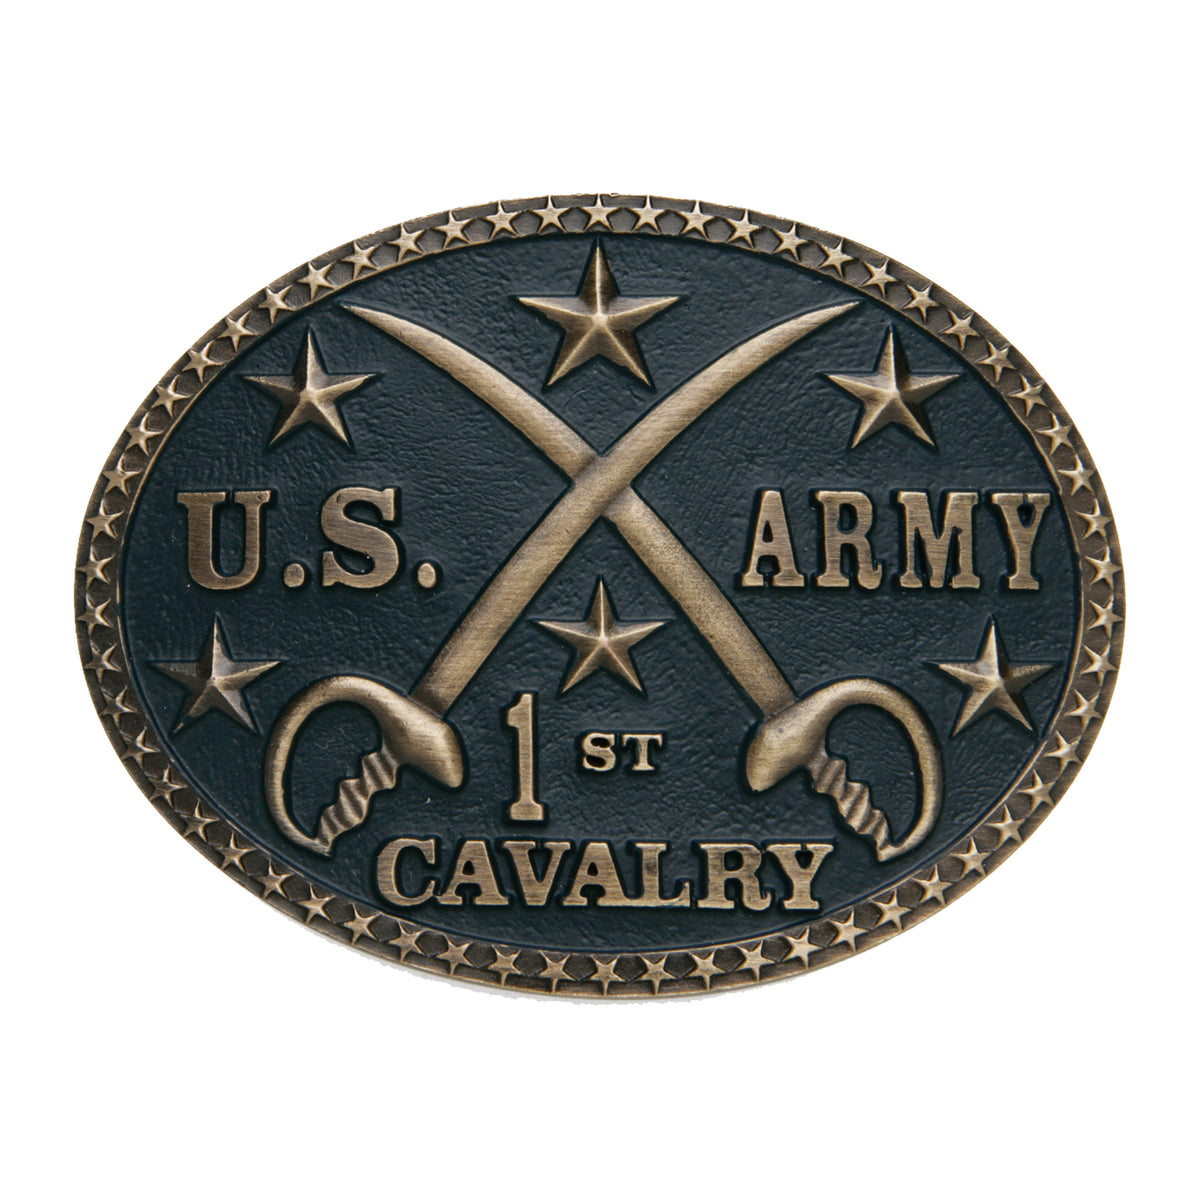 U.S. Army 1st. Cavalry Buckle